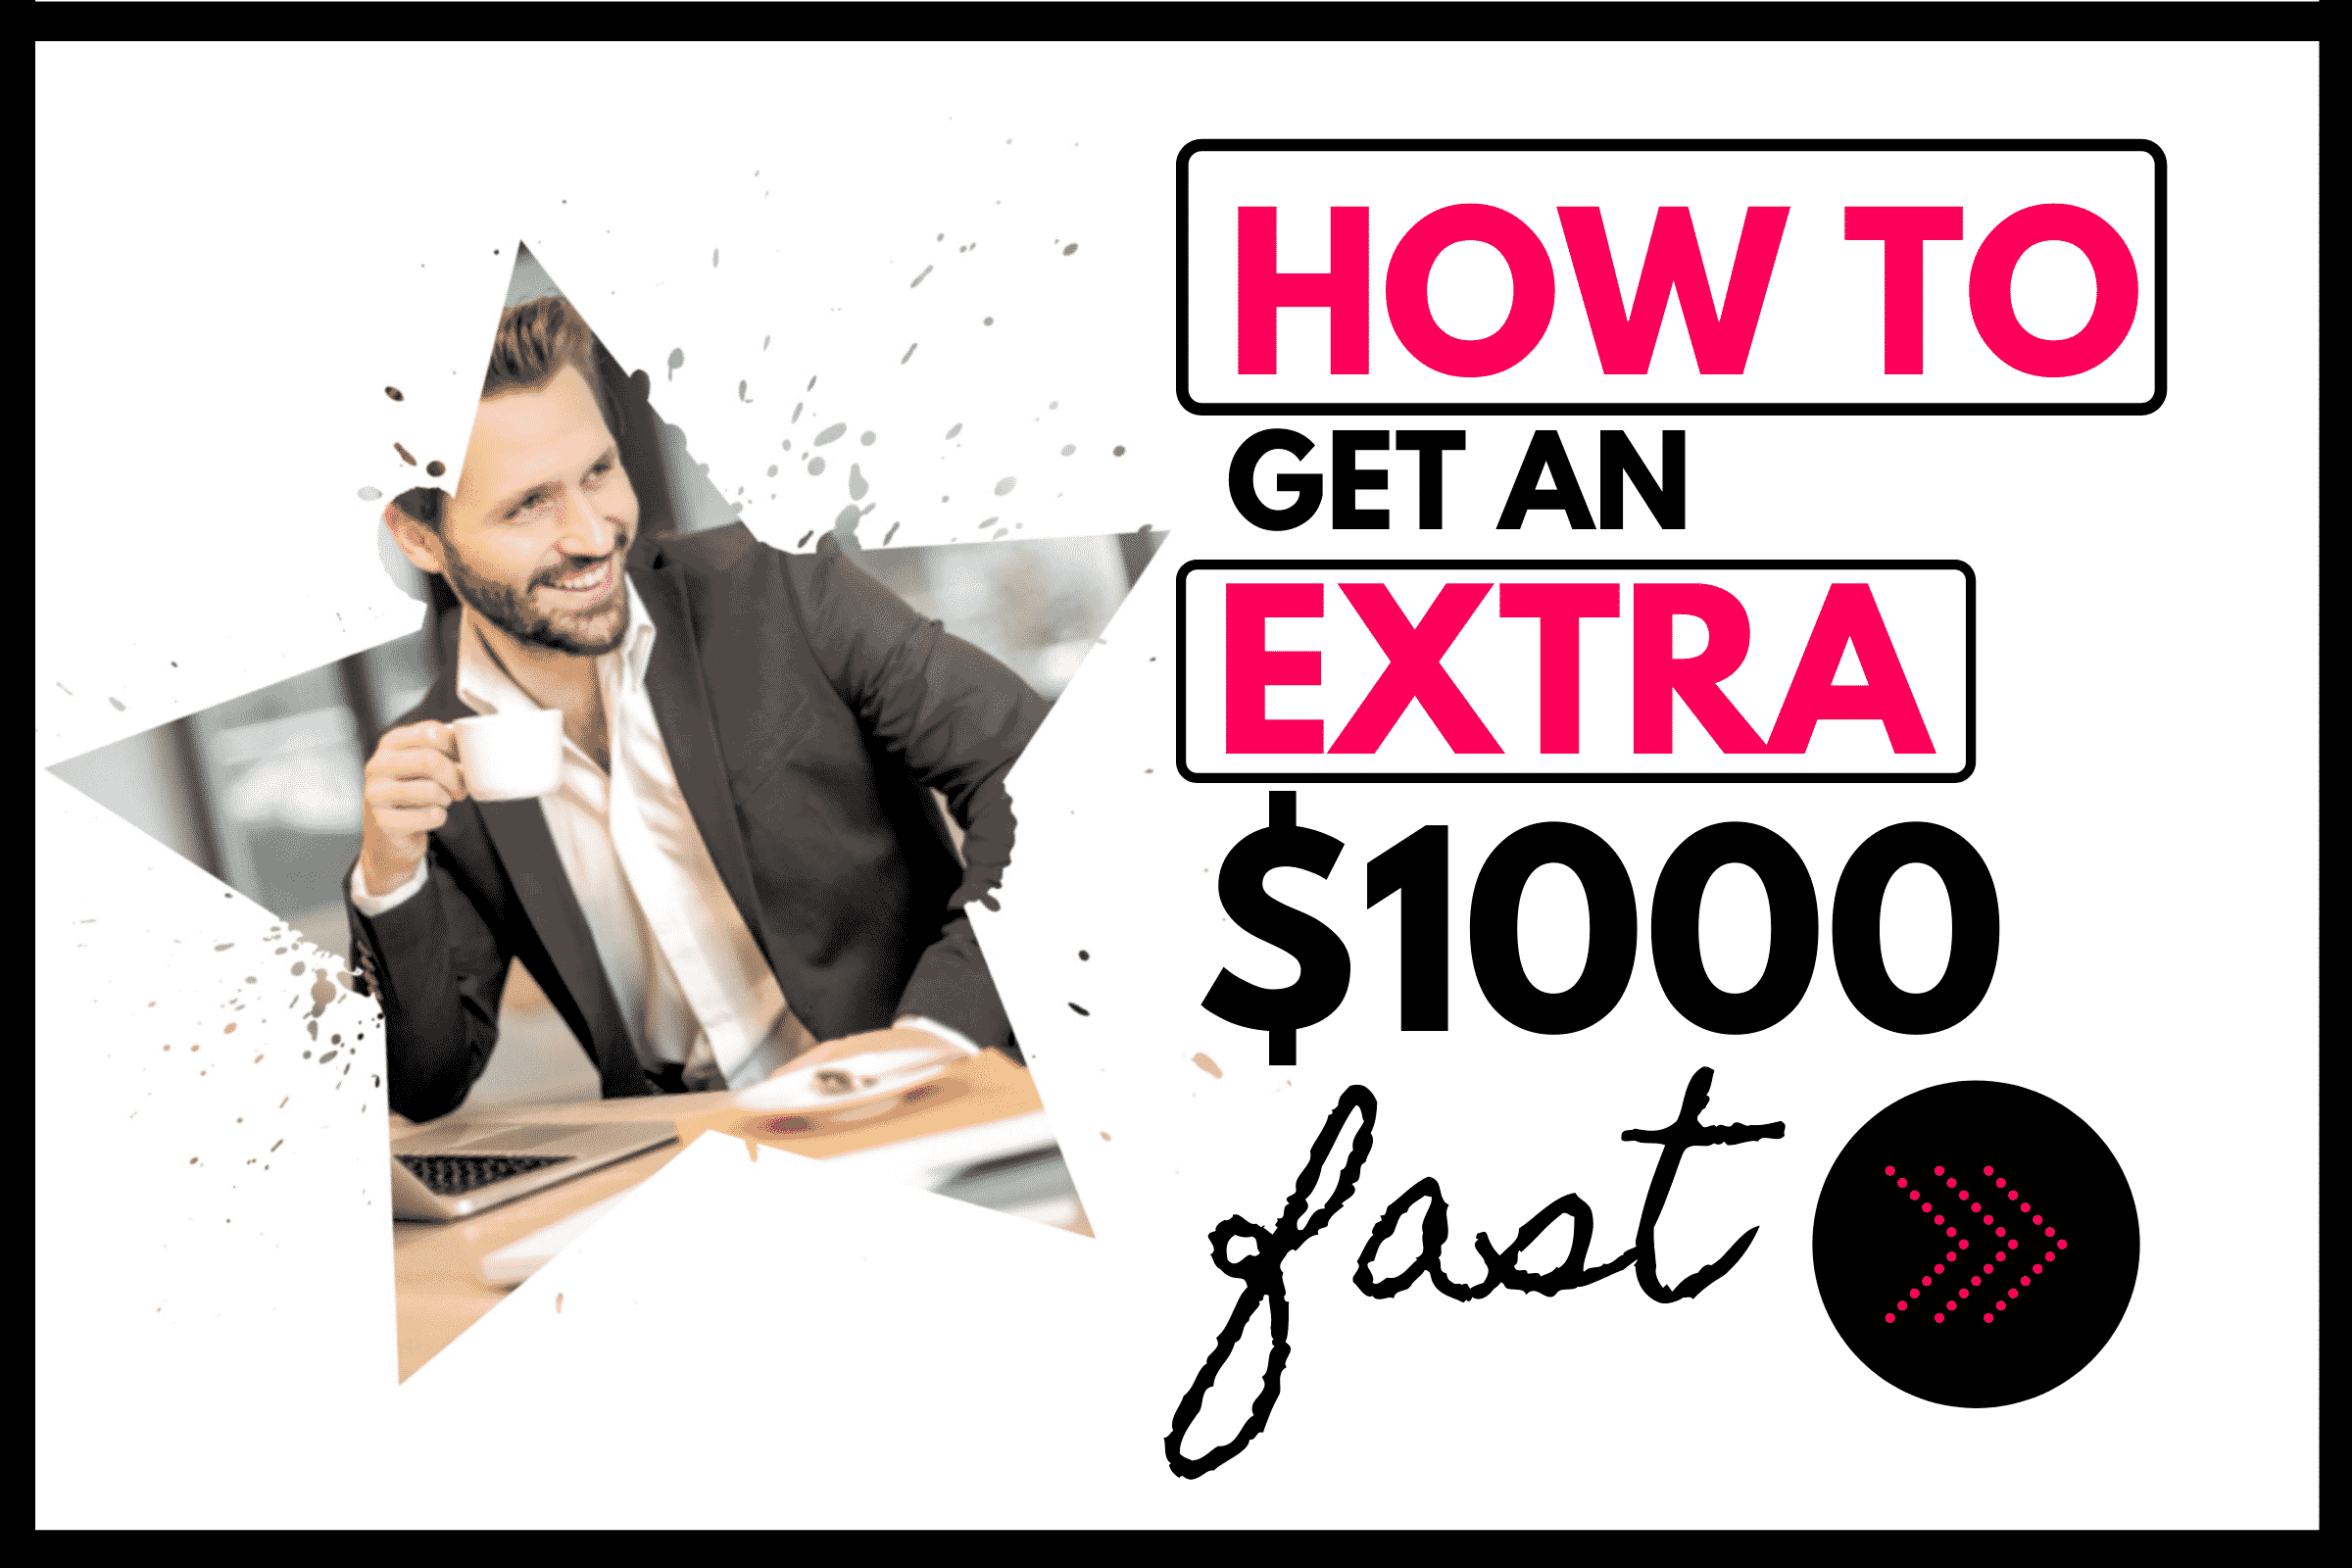 how to get an extra $1000 fast